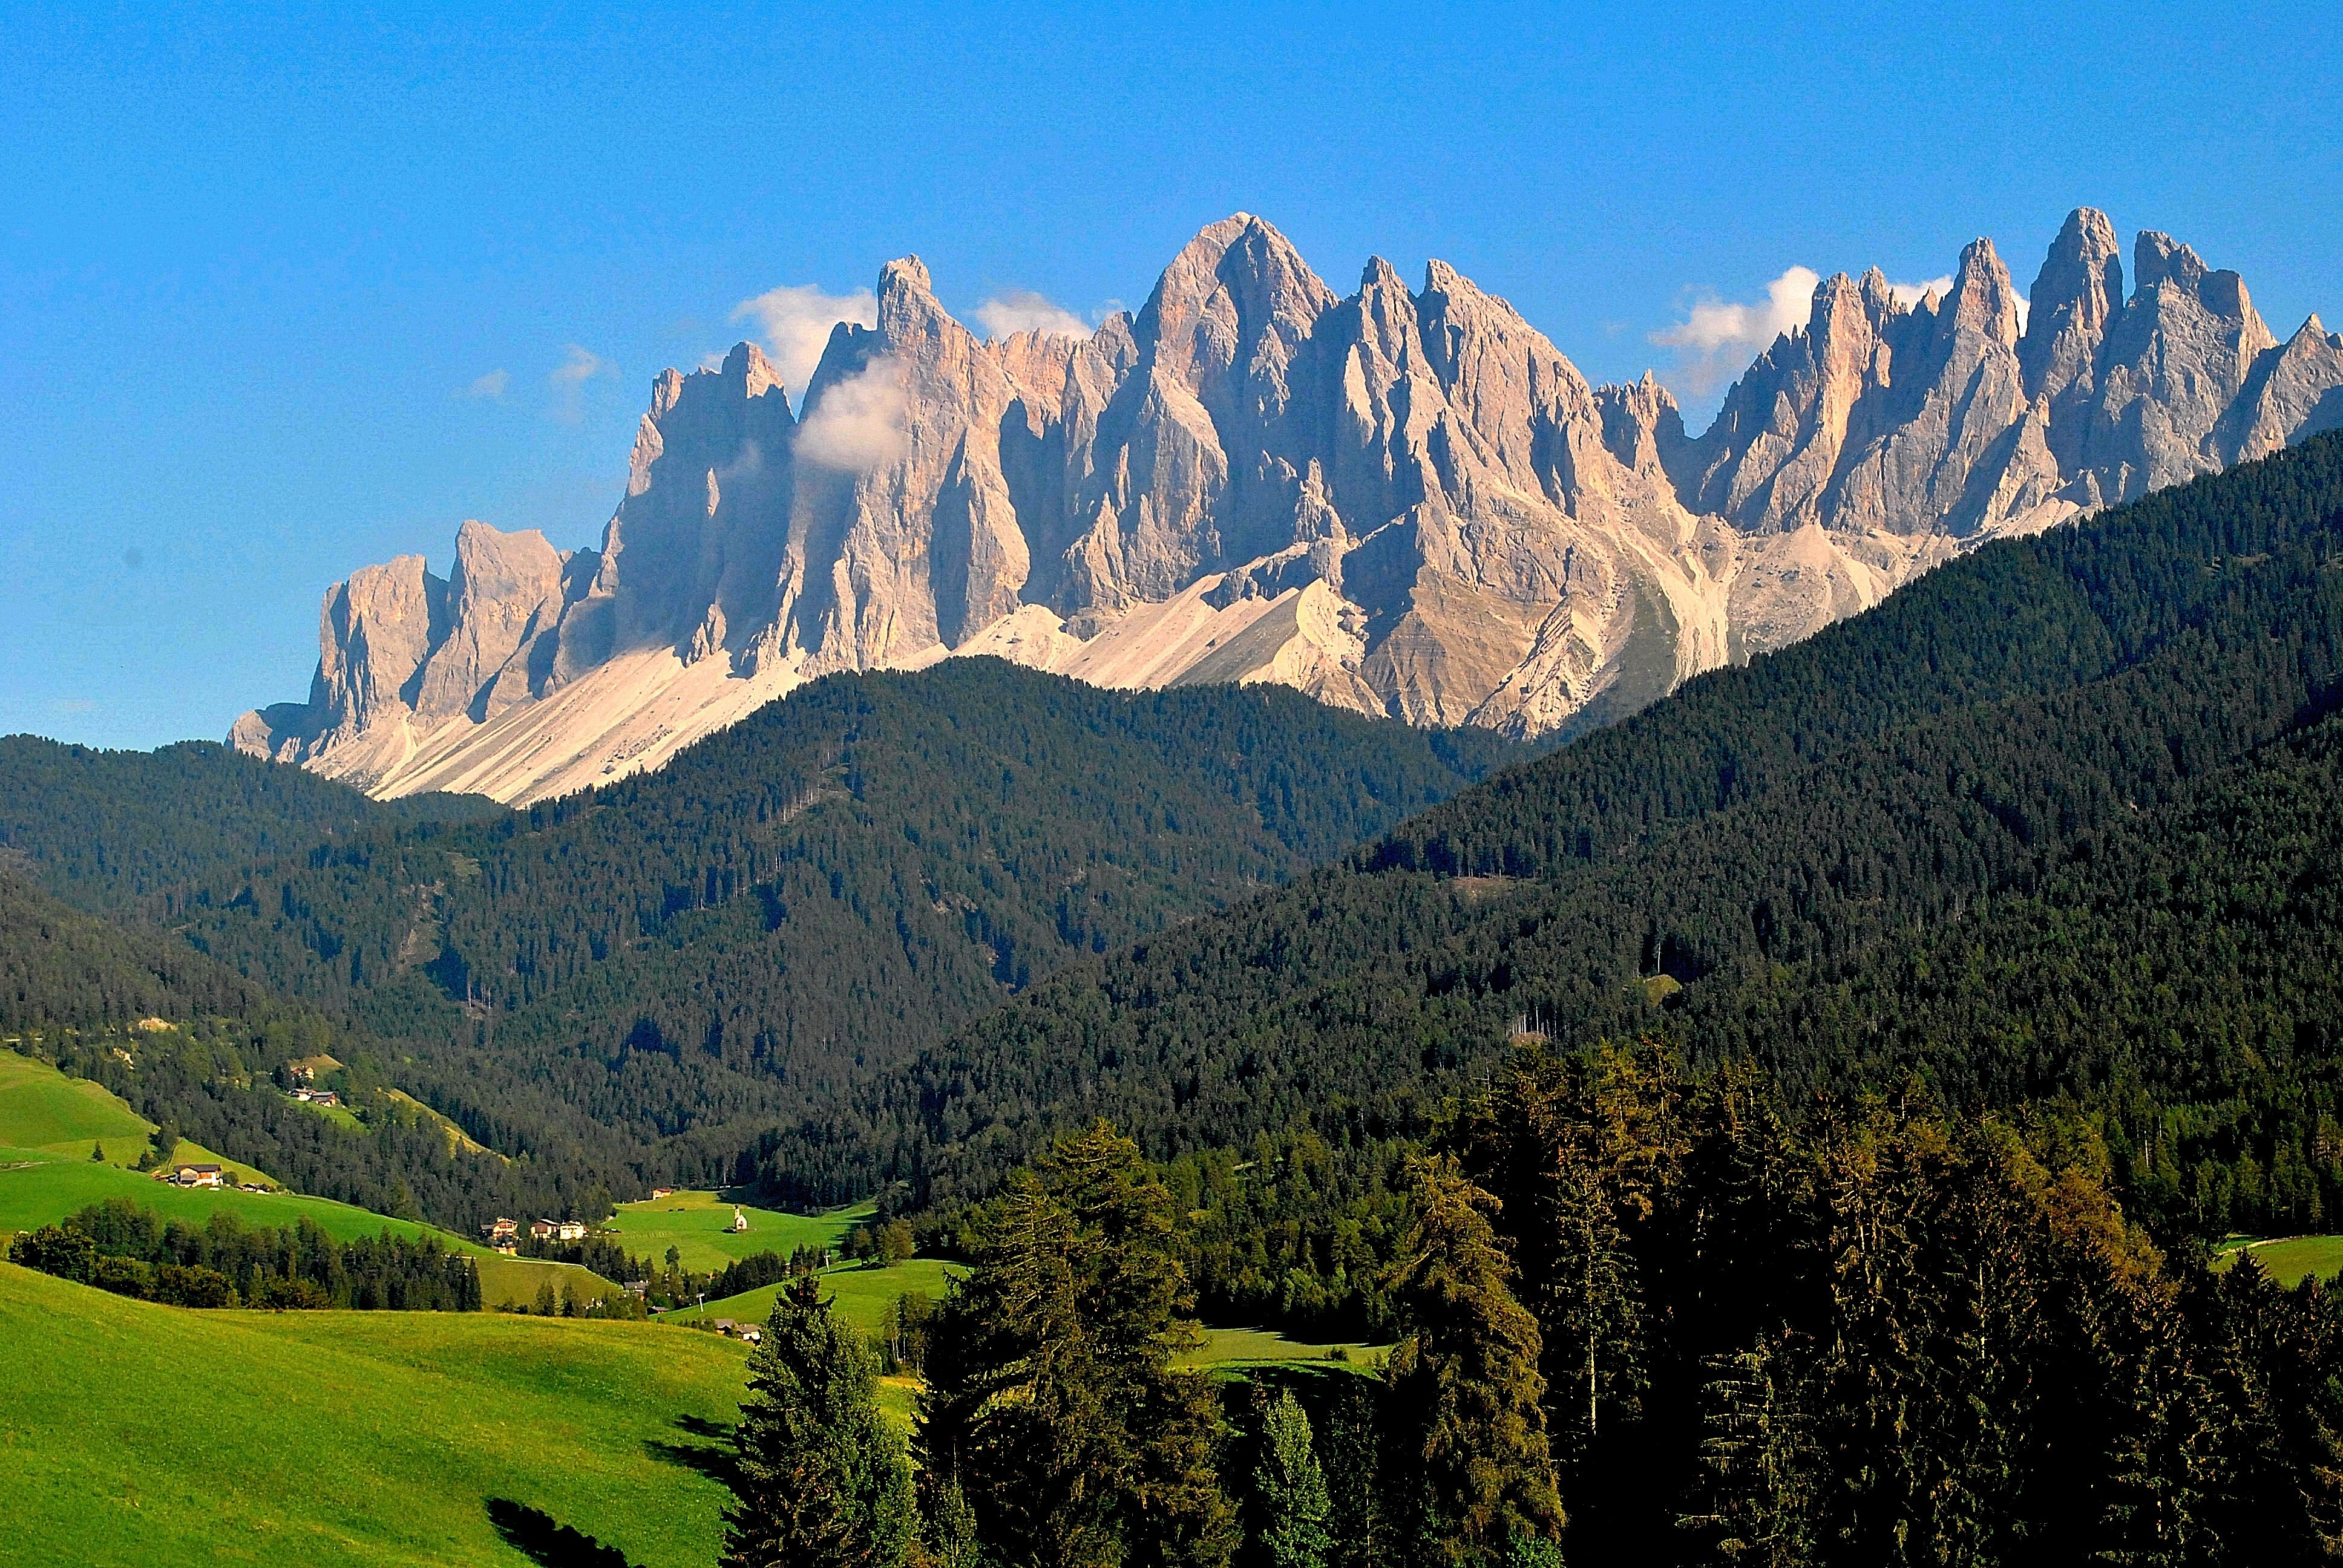 Pics of places that look like places from the films, or are just nice. [2] - Page 4 Trentino-alto-adige_n3yae.T0